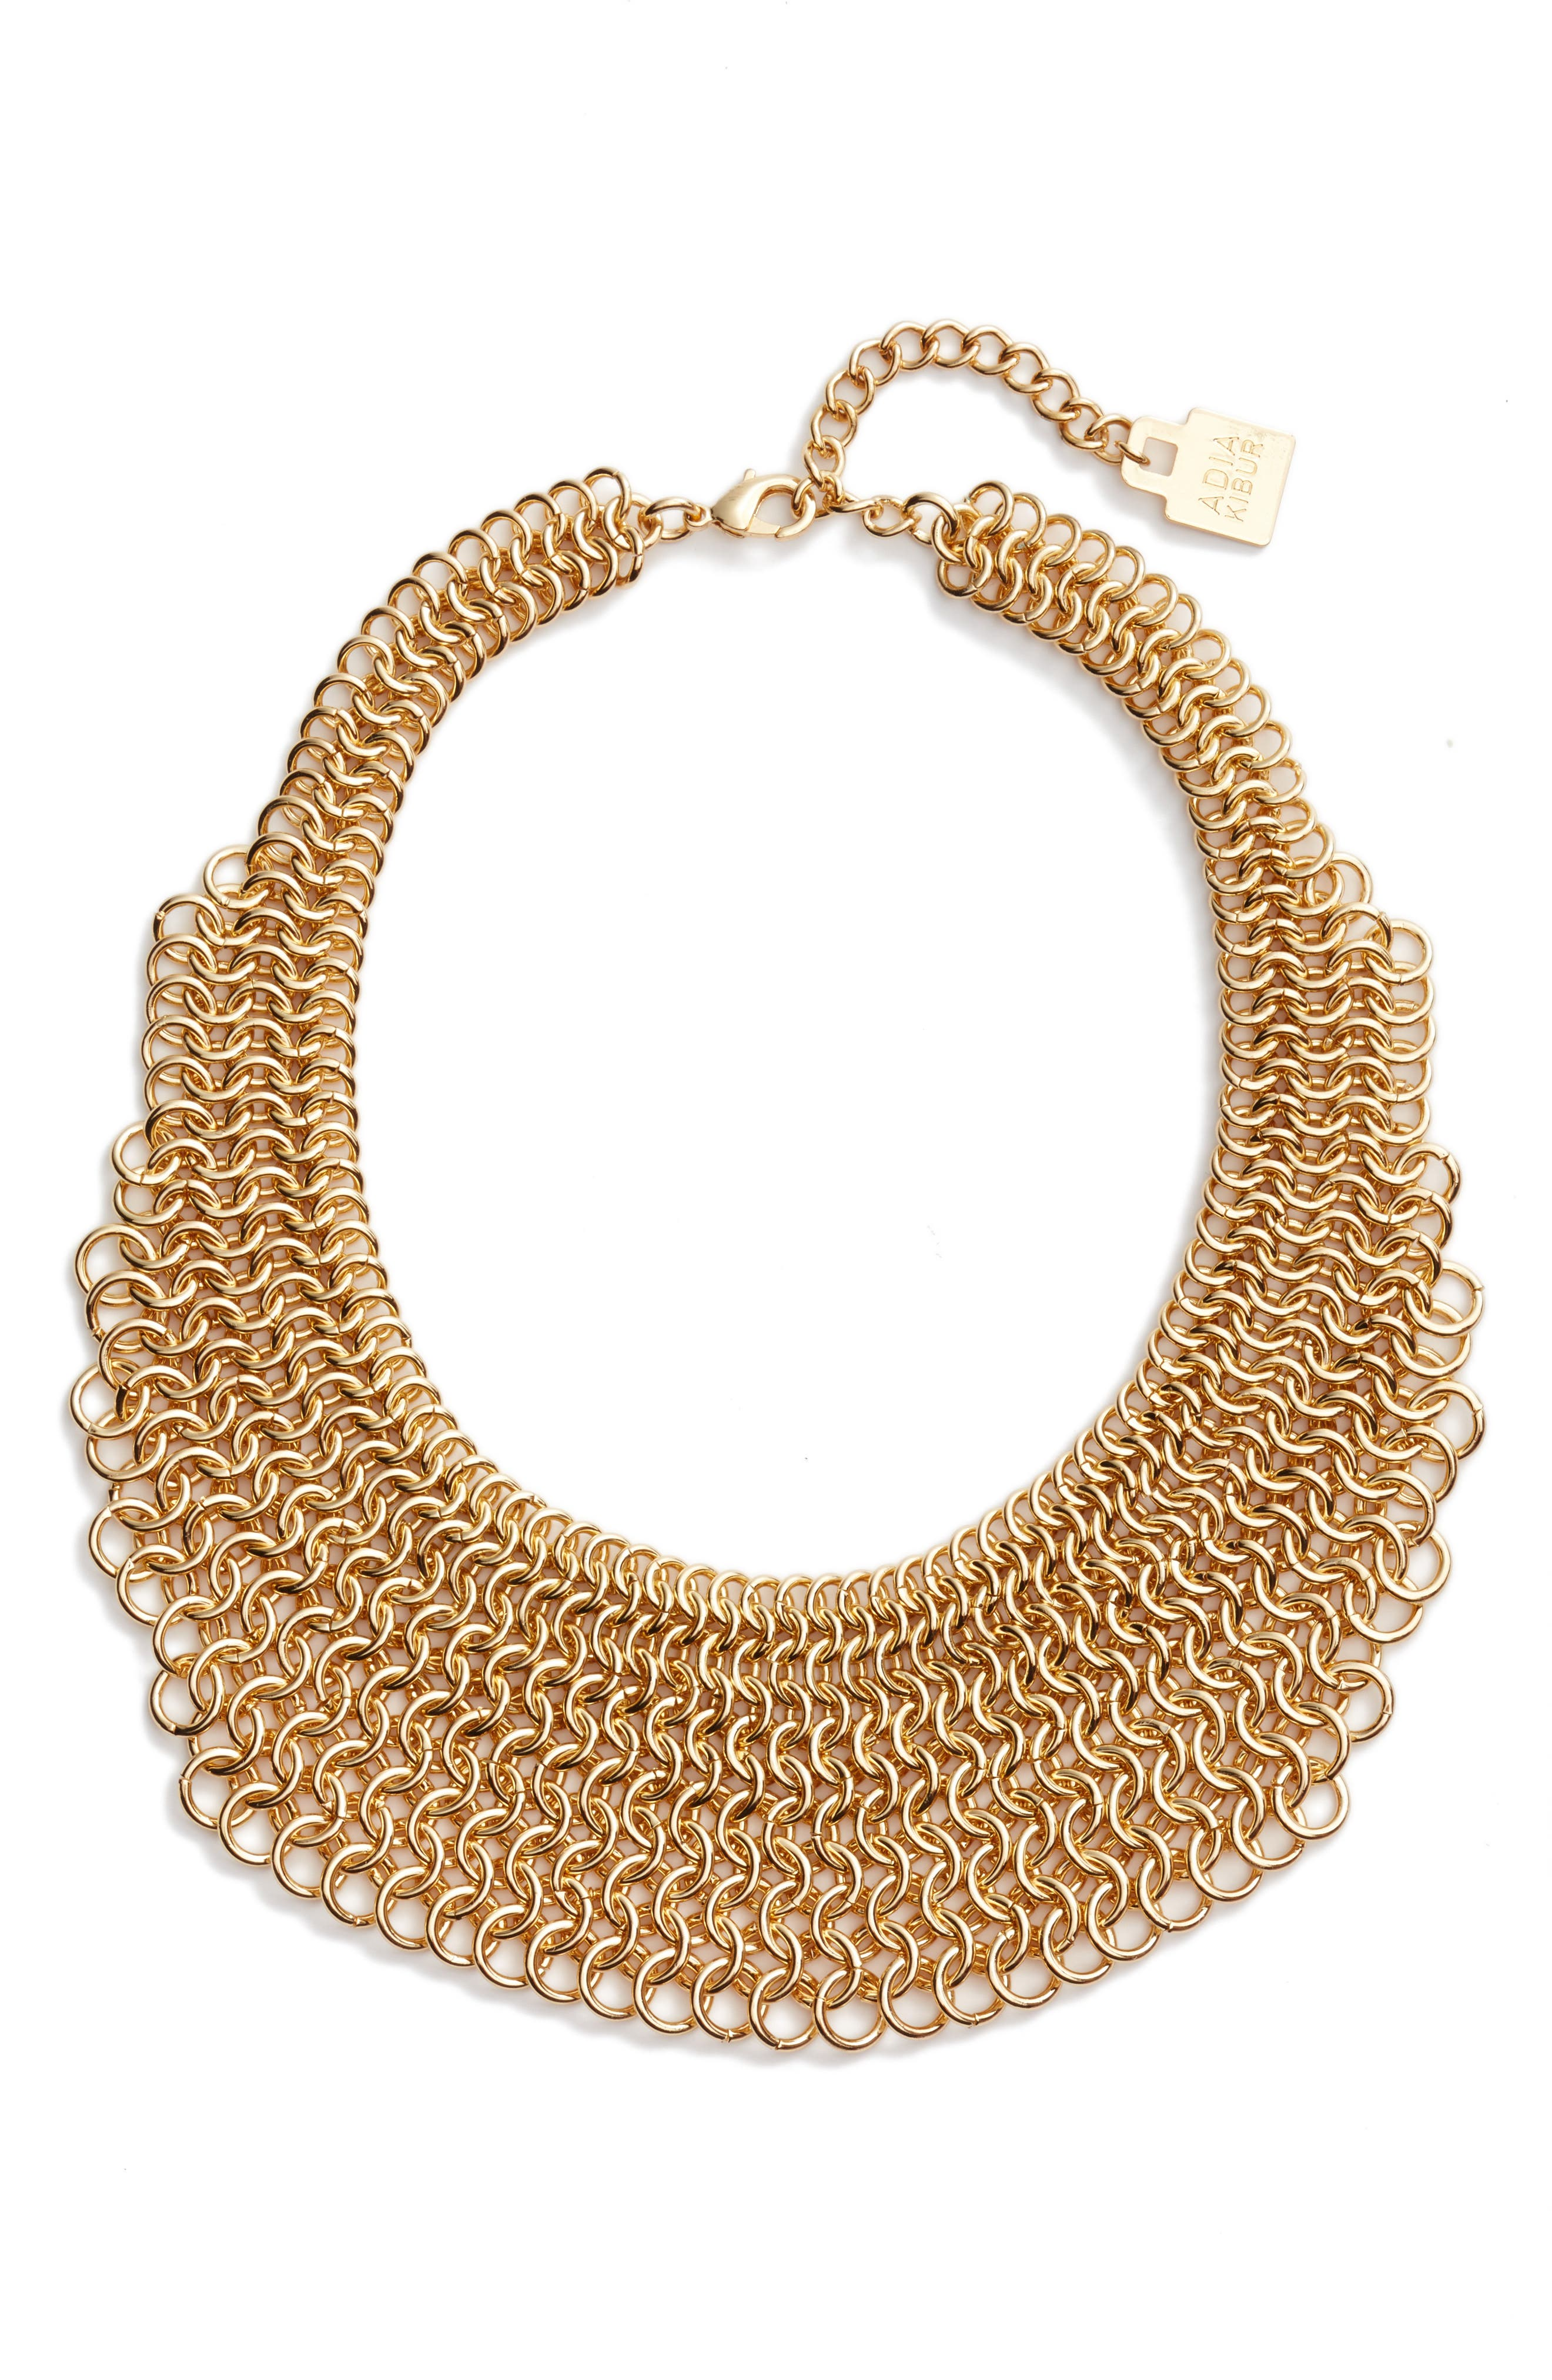 Linked Circle Statement Bib Necklace,                         Main,                         color, Gold